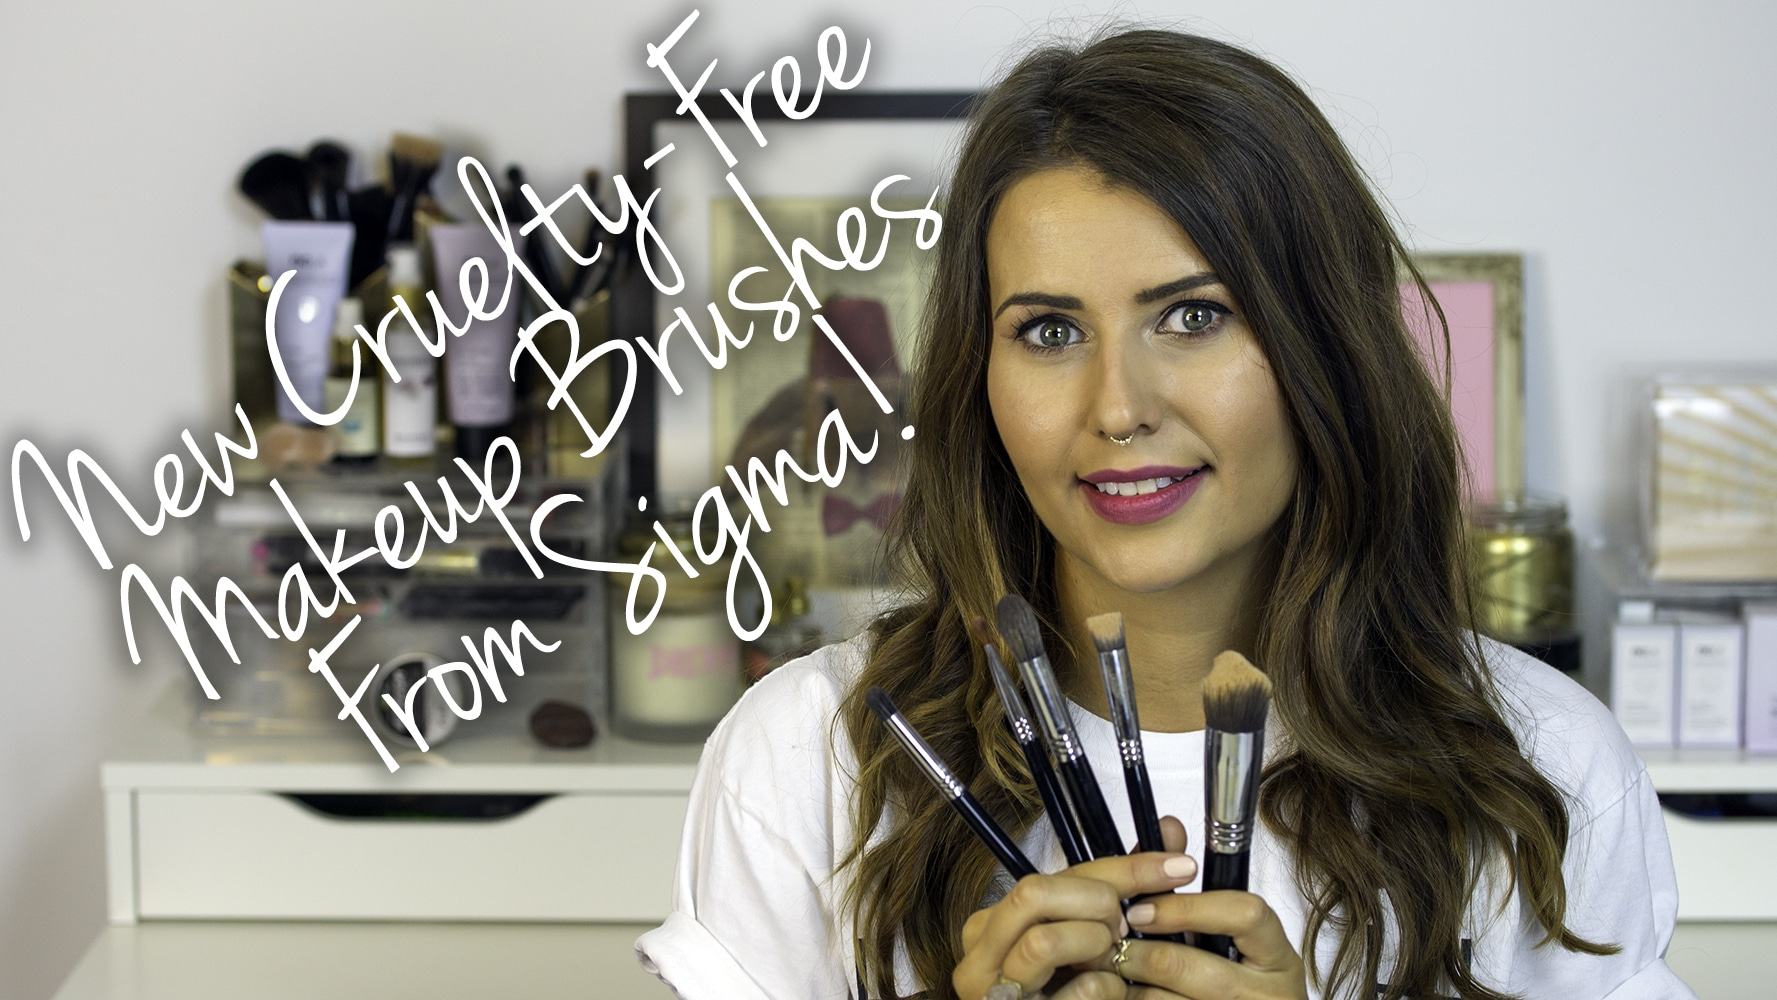 New Cruelty Free Makeup Brushes from Sigma Video